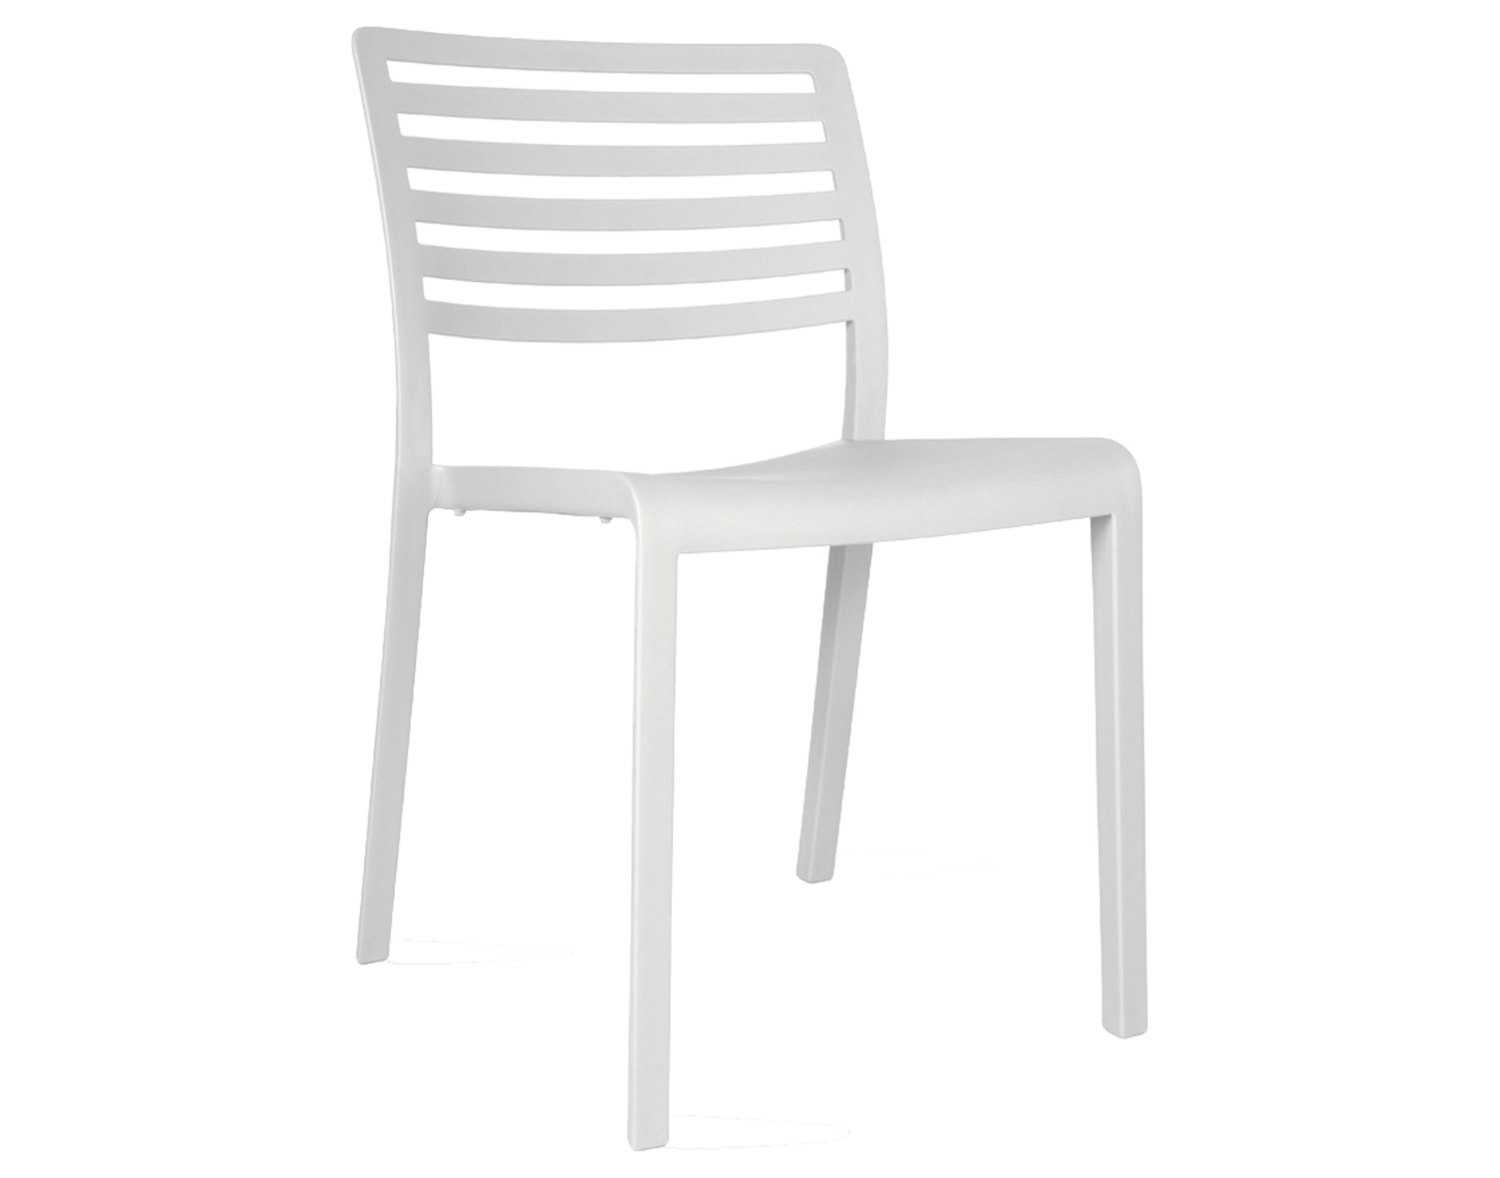 resol outdoor patio furniture at patioliving resol lama recycled plastic white side chair shipping